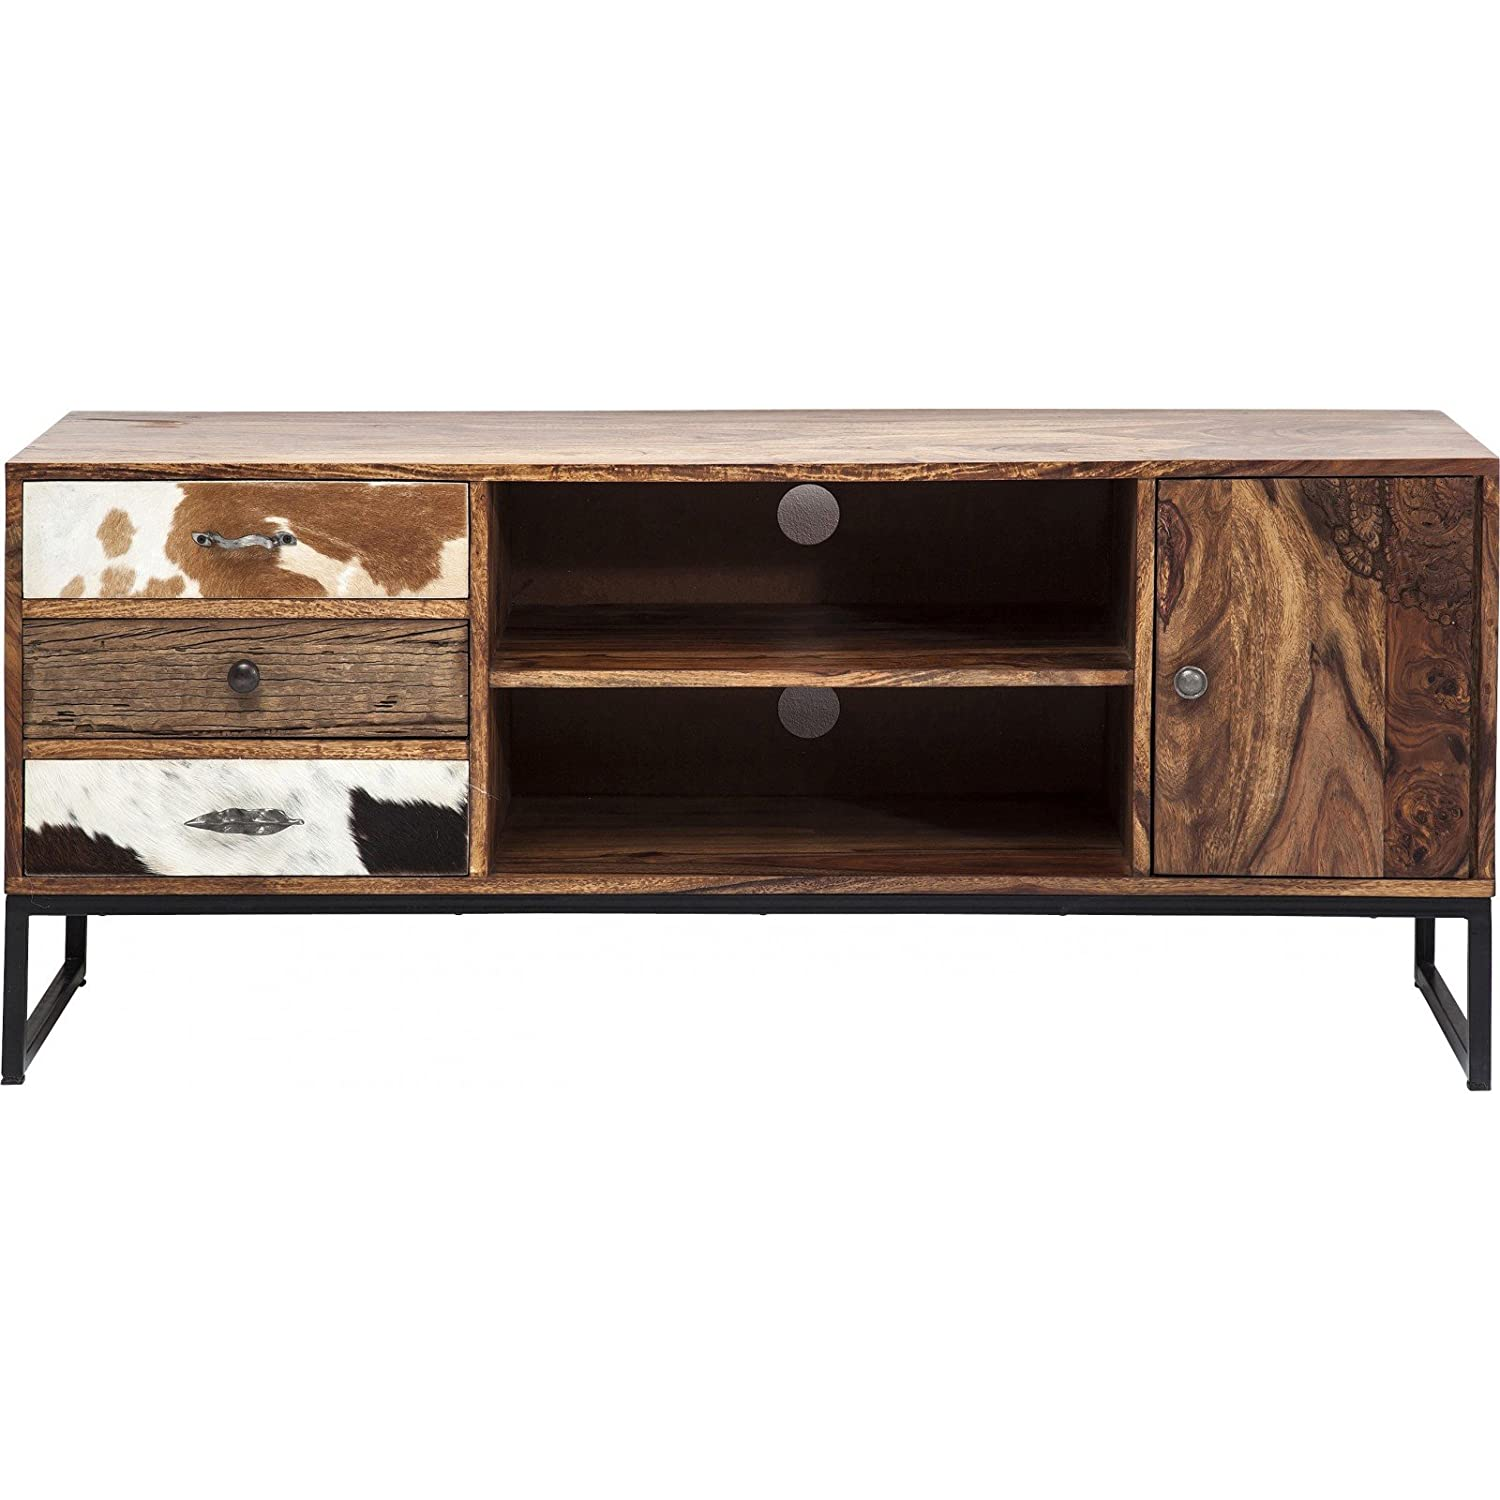 Meuble Tv En Bois Rodeo 3 Tiroirs 2 Portes Kare Design Amazon Fr  # La Redoute Meuble Tv